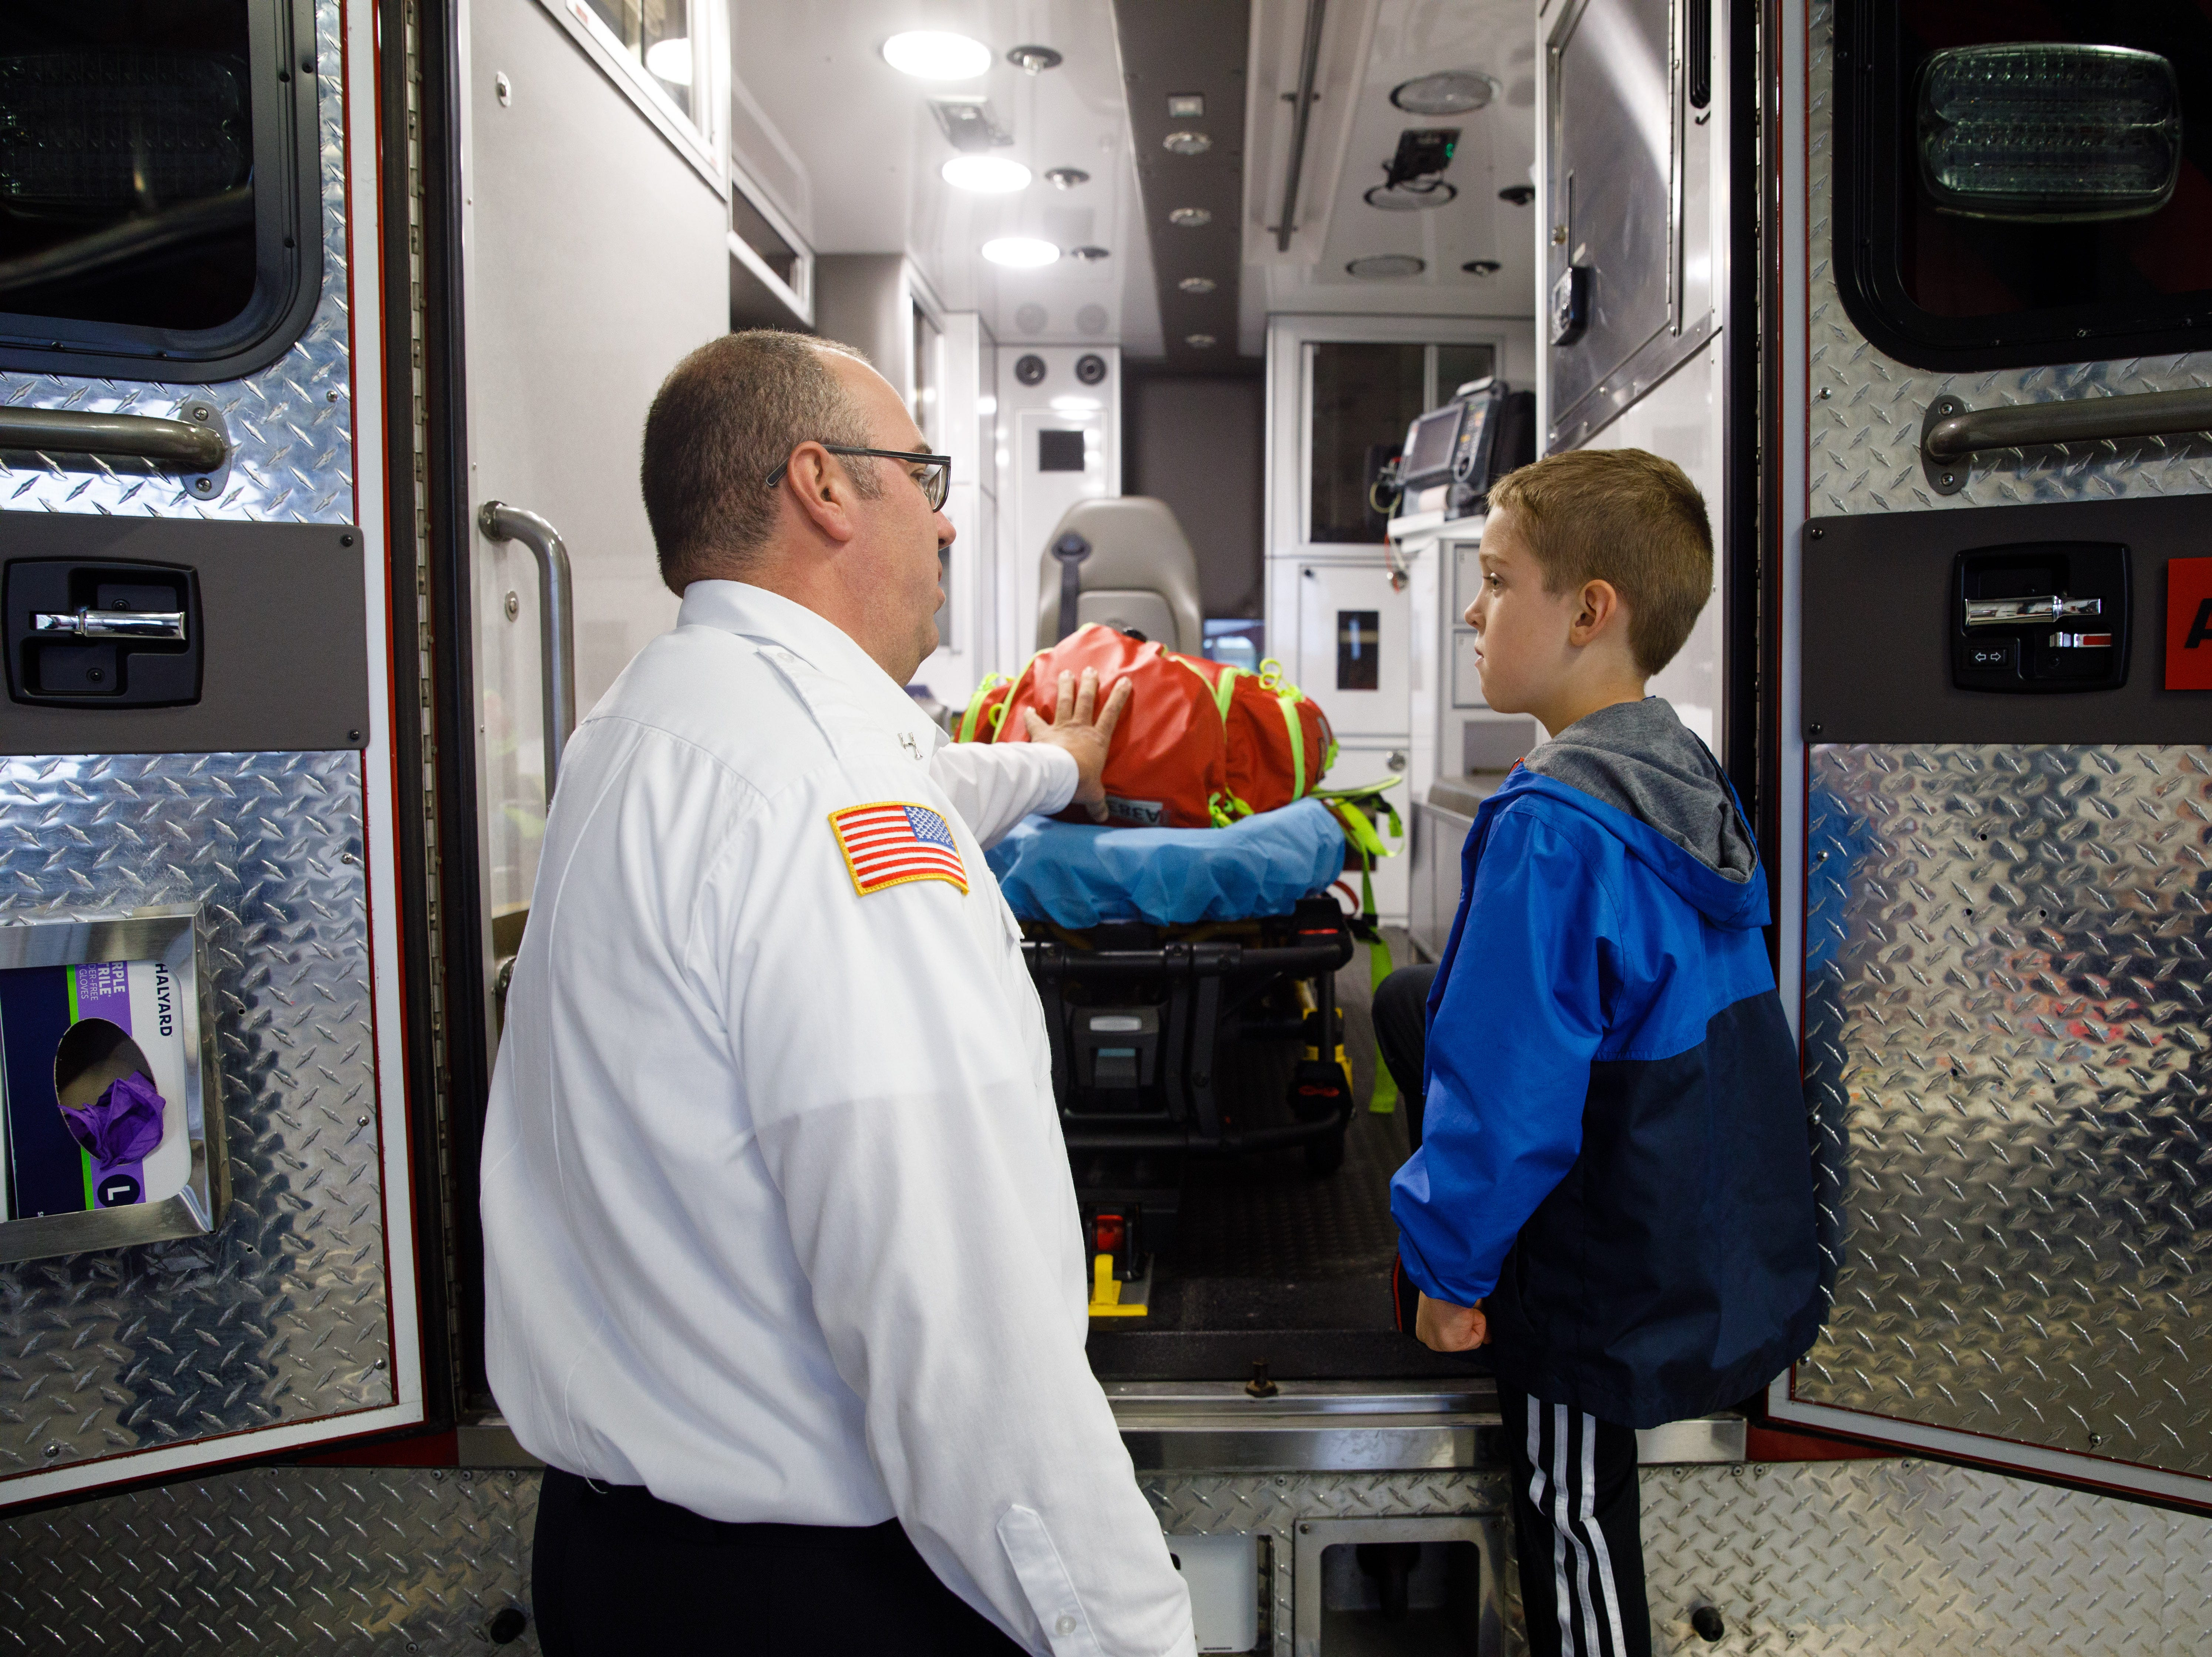 Fire Marshall Craig Van Huel shows the inside of an ambulance to Wyatt Puffer, 6, of Des Moines, Wednesday, Oct. 10, 2018, during the Johnston-Grimes Metropolitan Fire Department's annual Fire Prevention Week Open House at the 62nd Avenue Fire Station in Johnston.